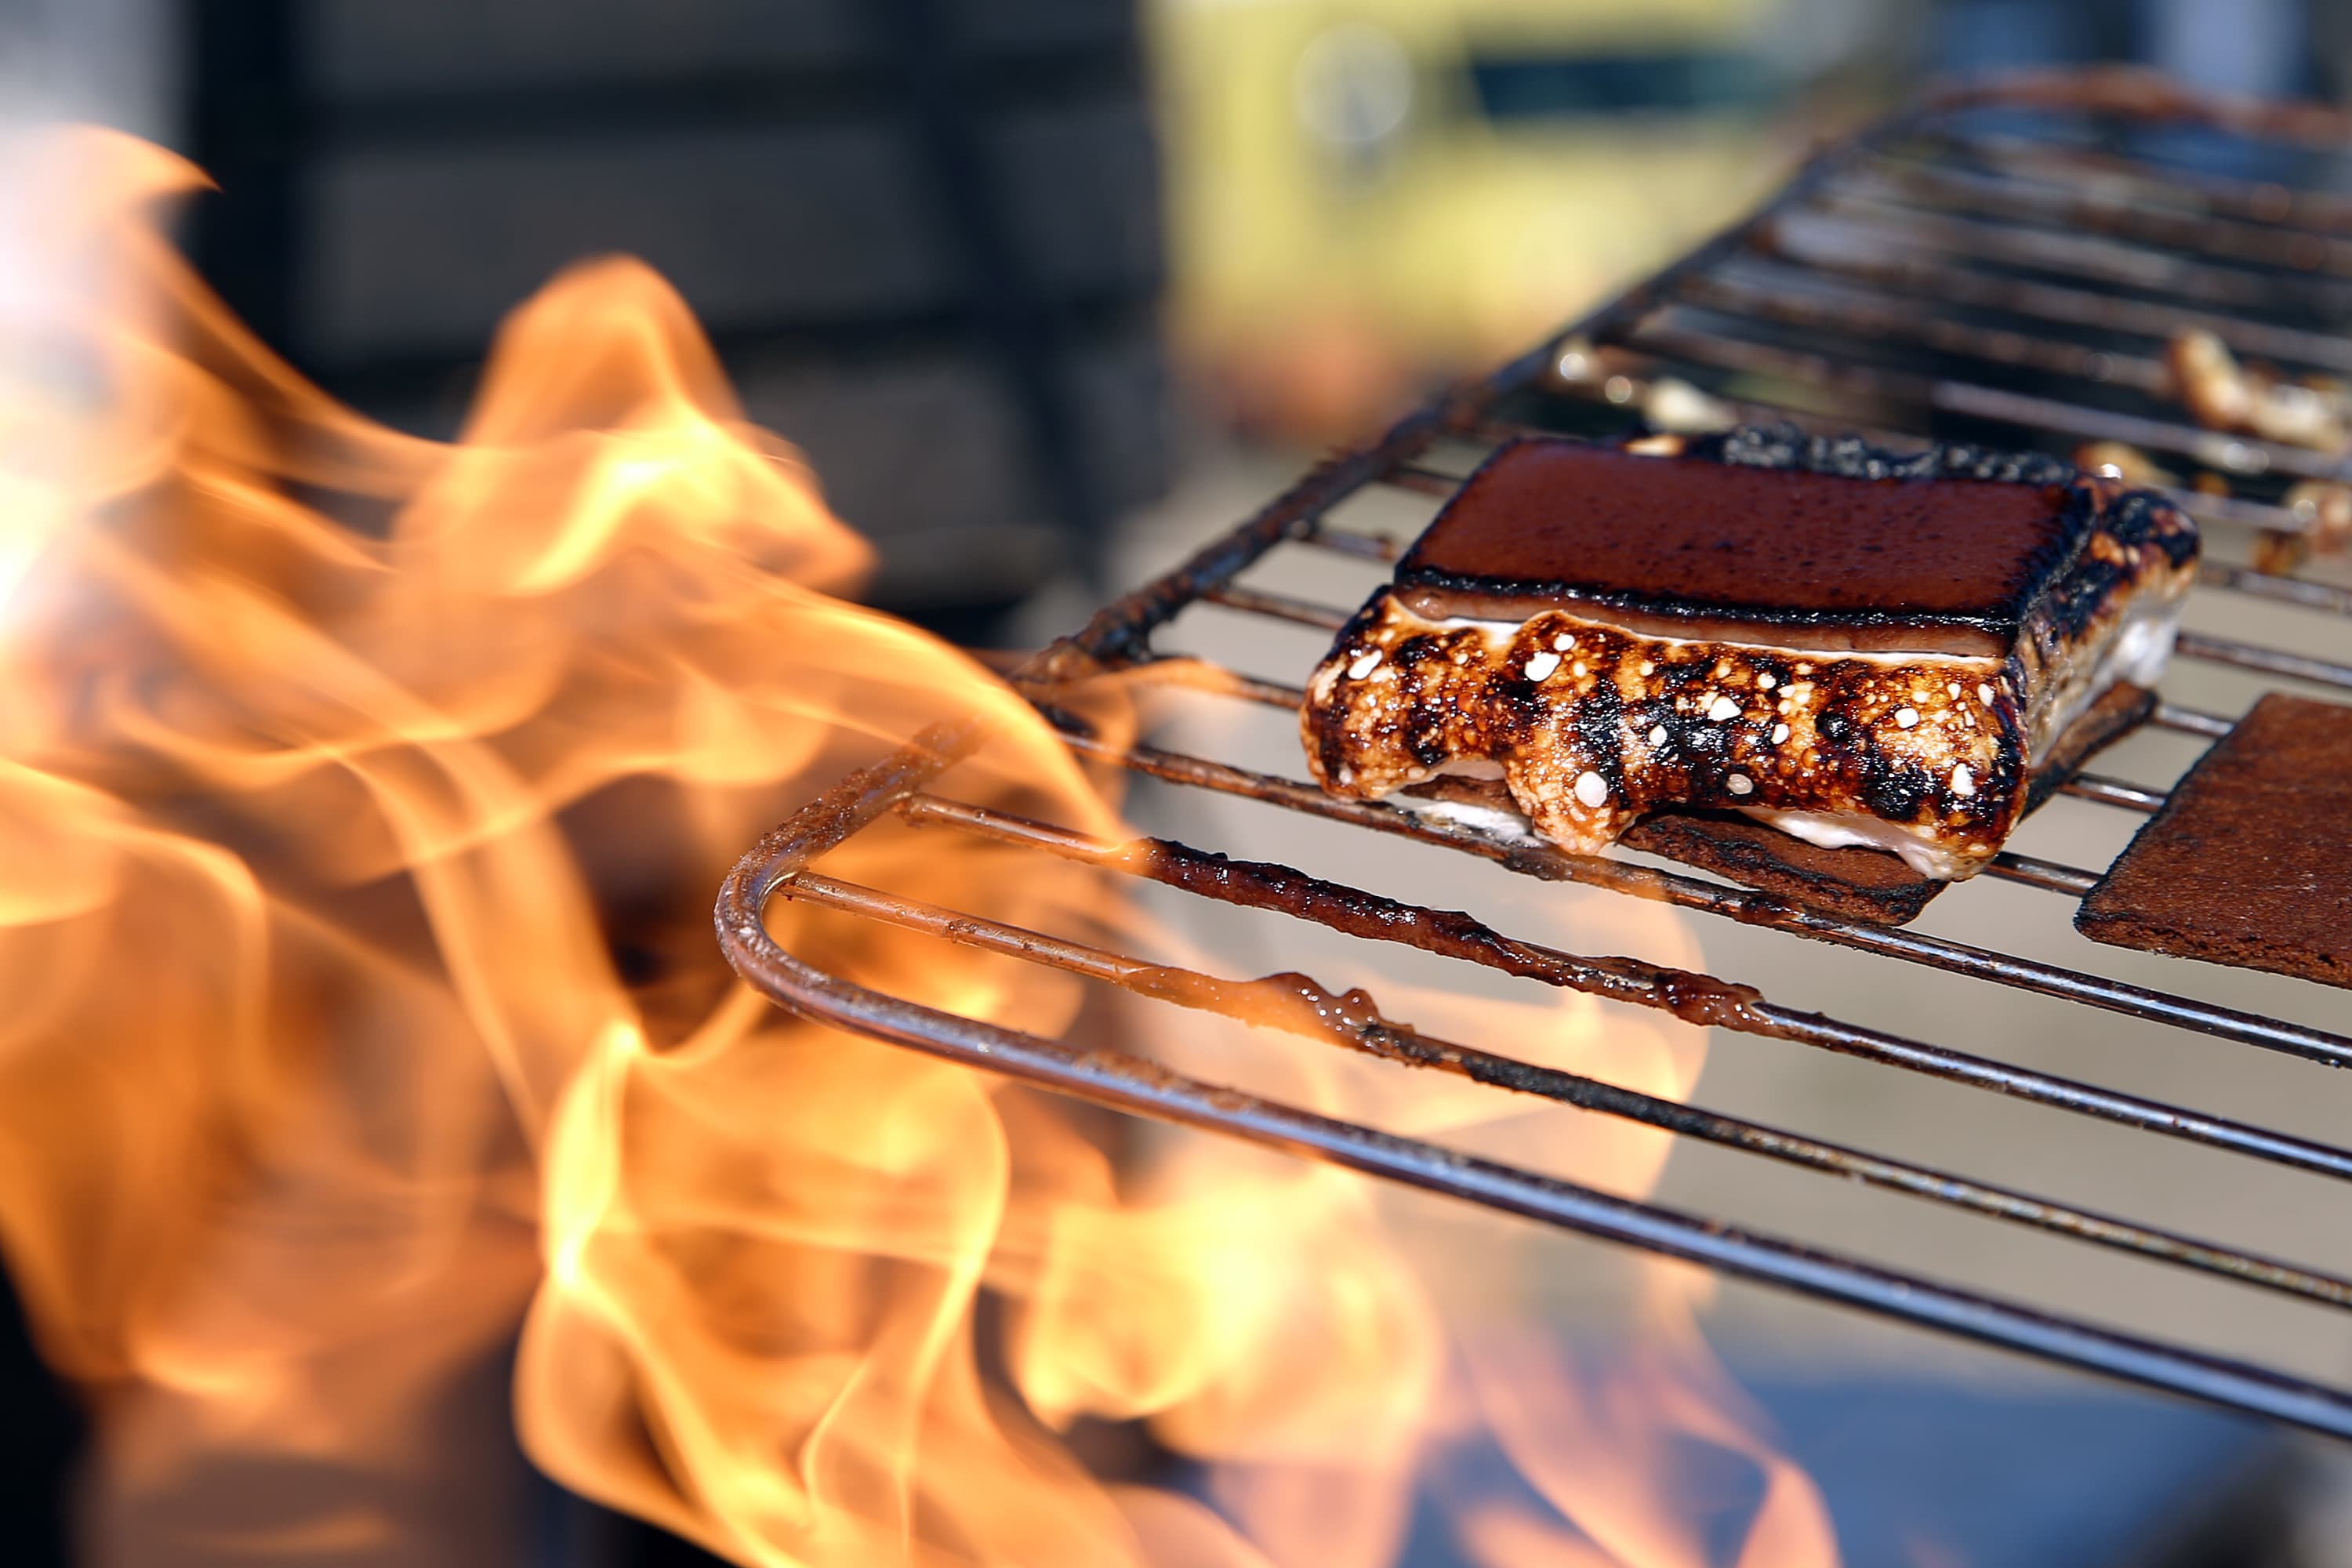 Hershey tracked Covid trends after seeing s'mores demand rise as cases grew, CEO says - CNBC